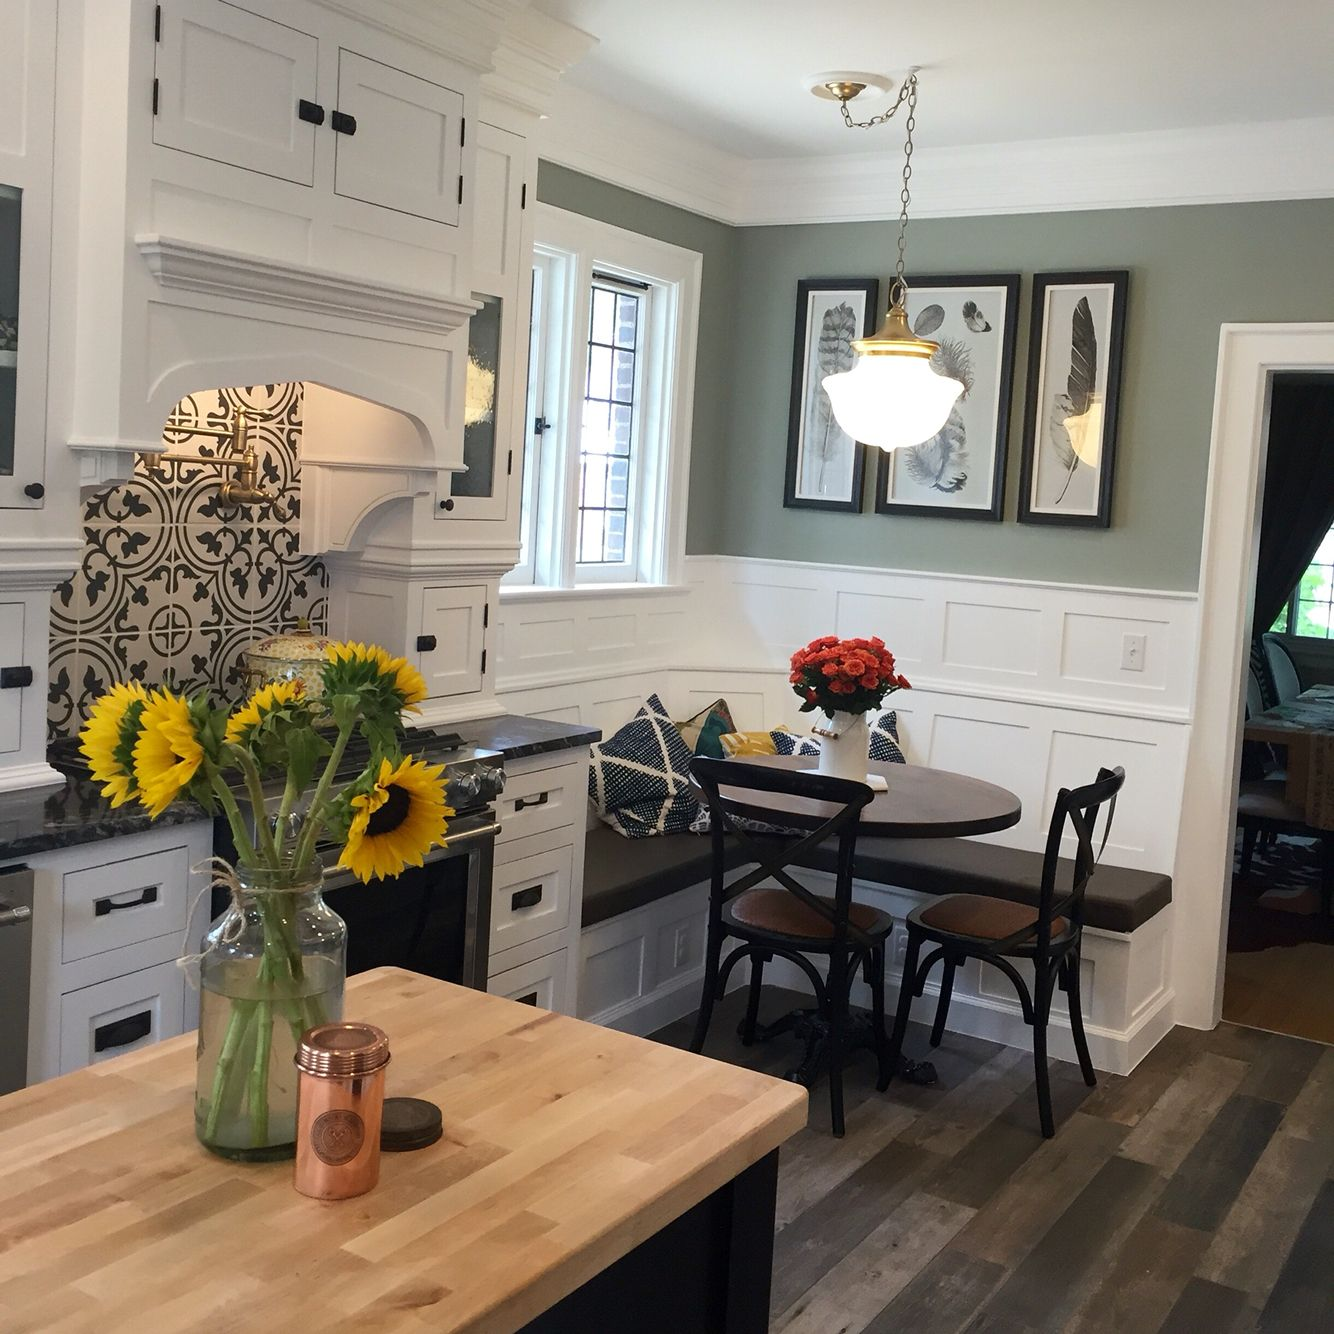 Bishop Kitchen Reno - 1926 Tudor, Sherwin Williams - Escape Gray ...